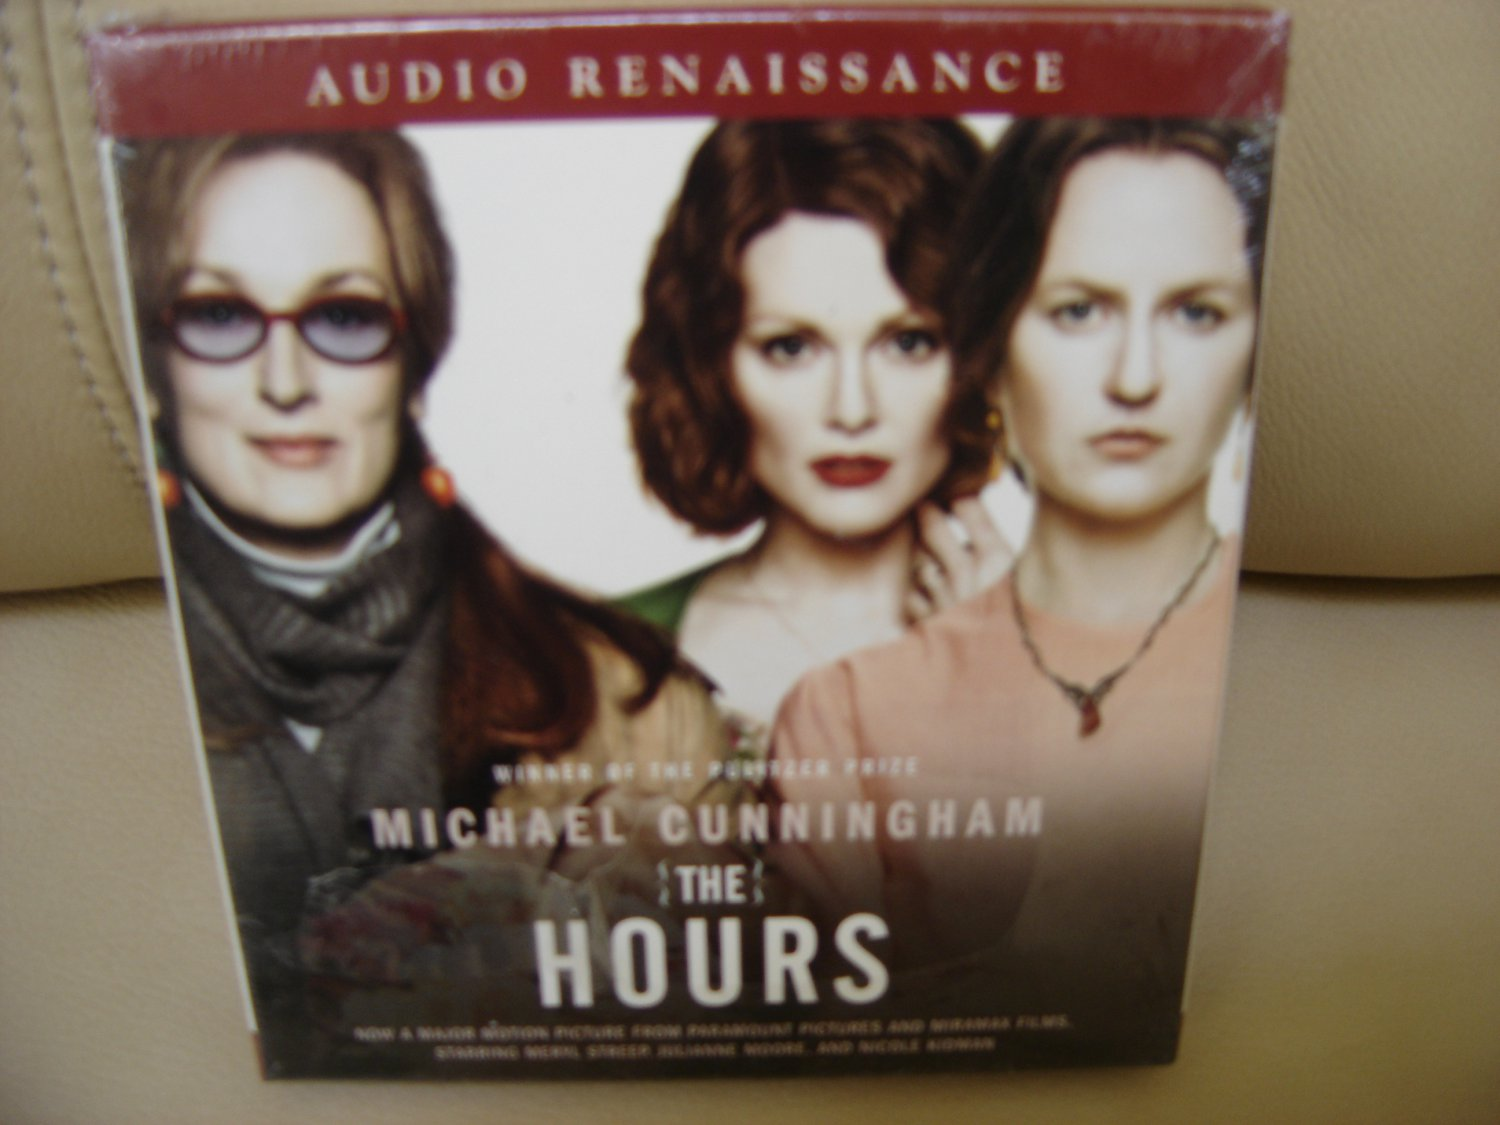 The Hours: A Novel by Michael Cunningham (Sep 1, 2003) - Audiobook!